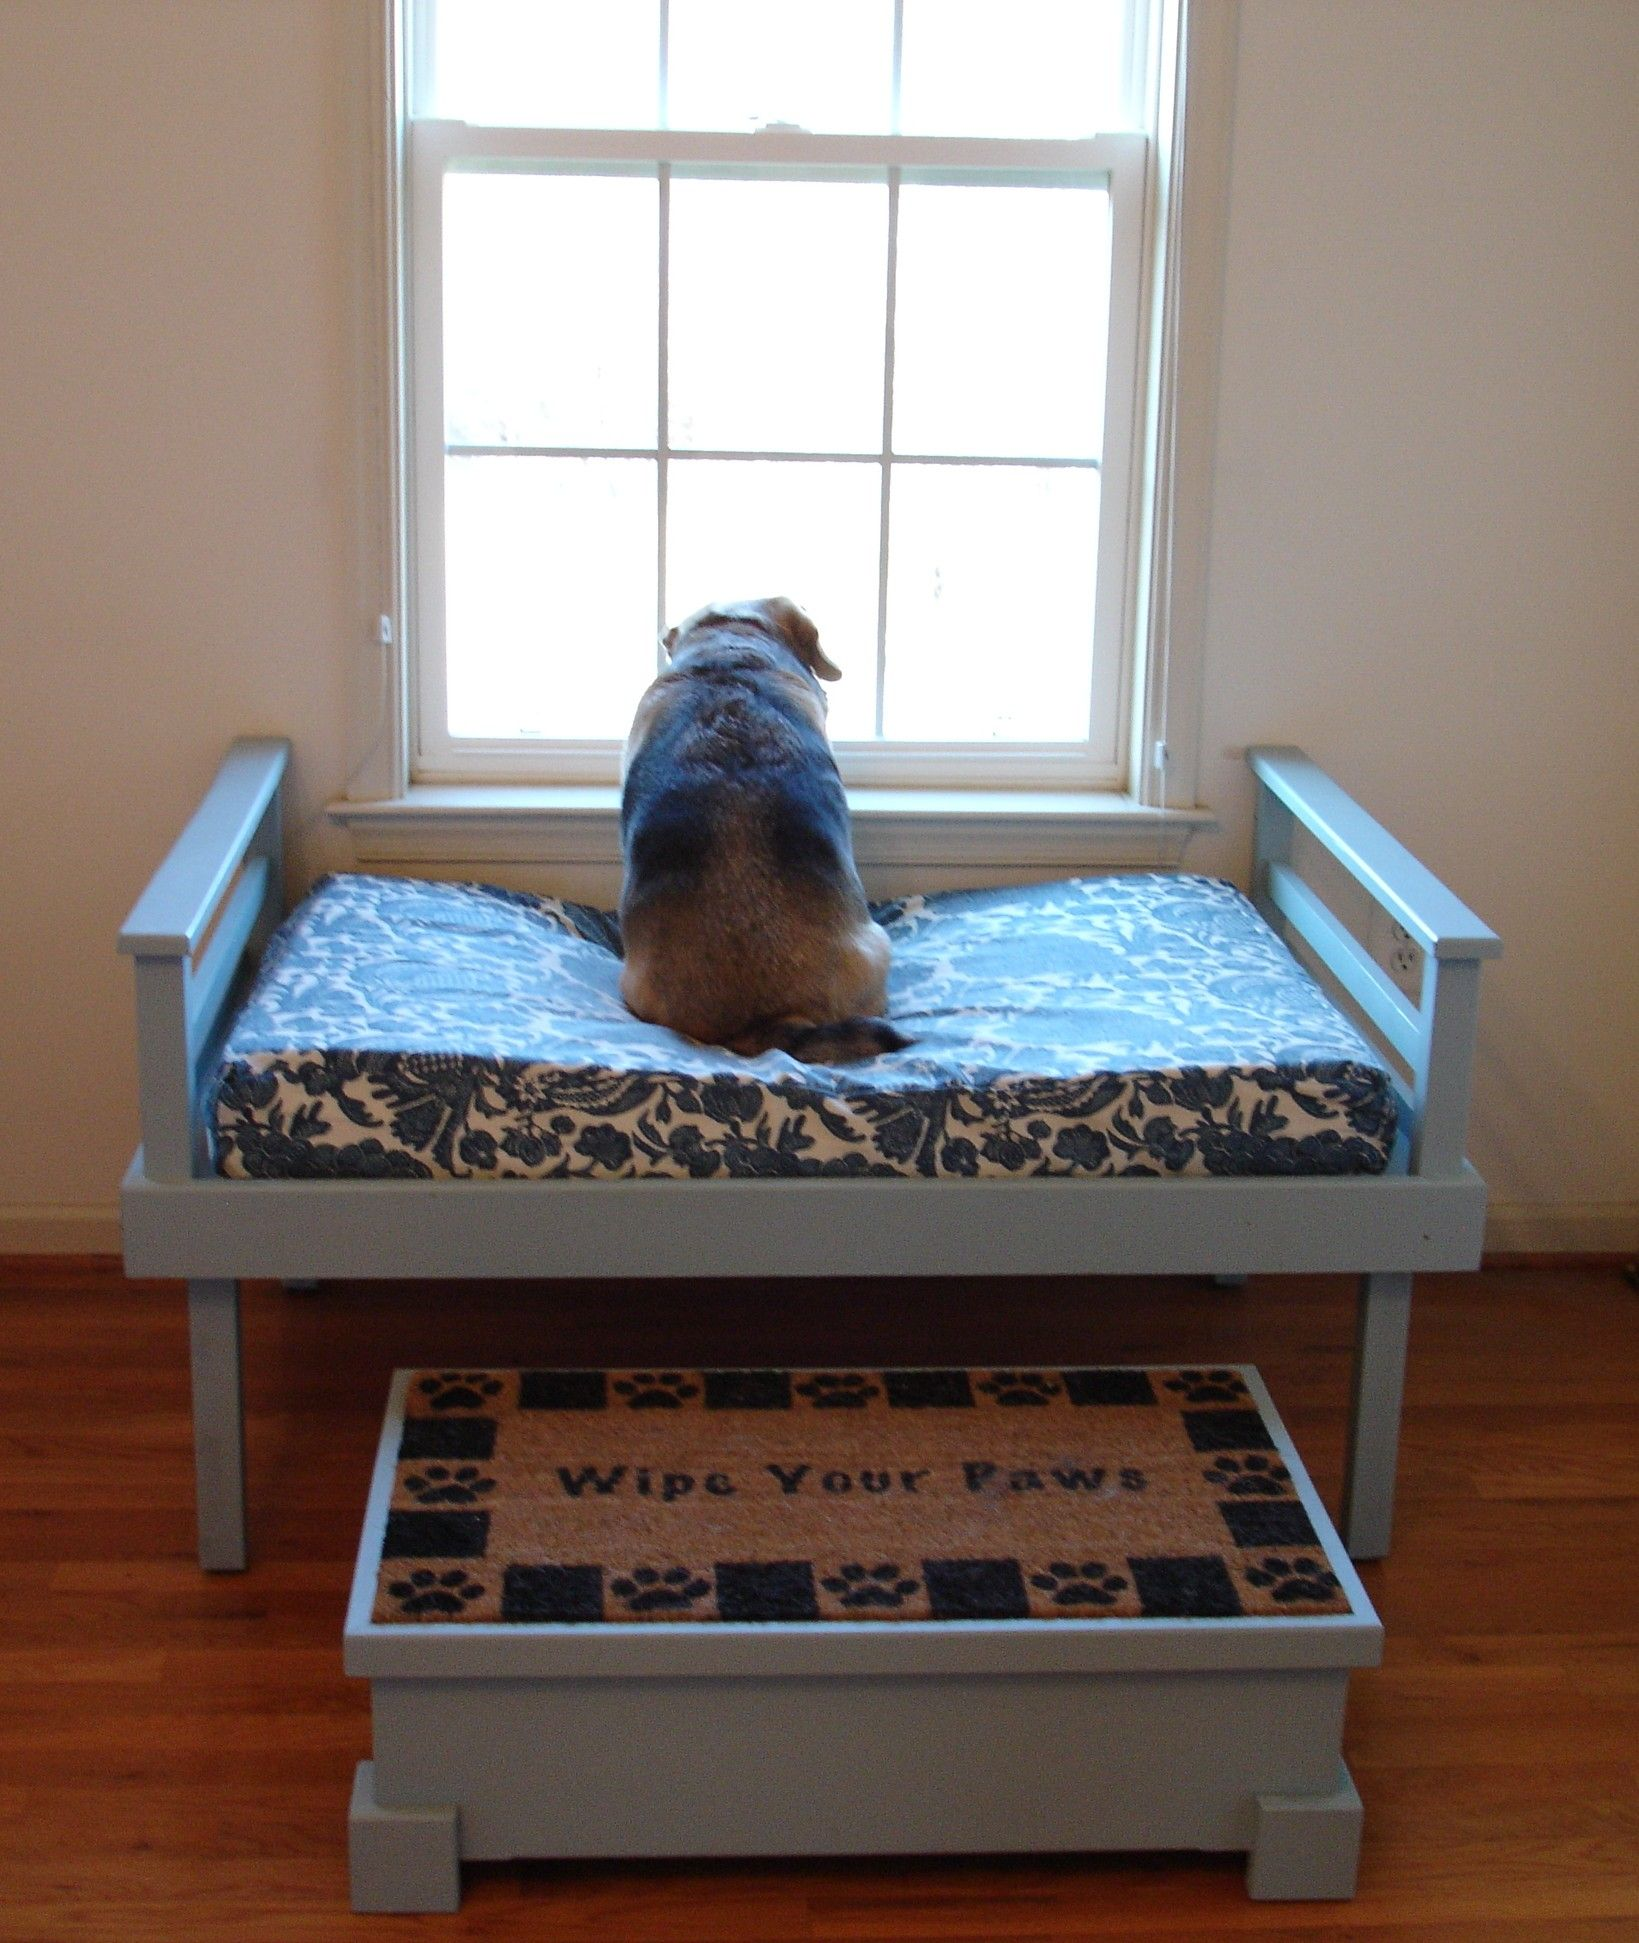 25 modern design ideas for pet beds that dogs and owners